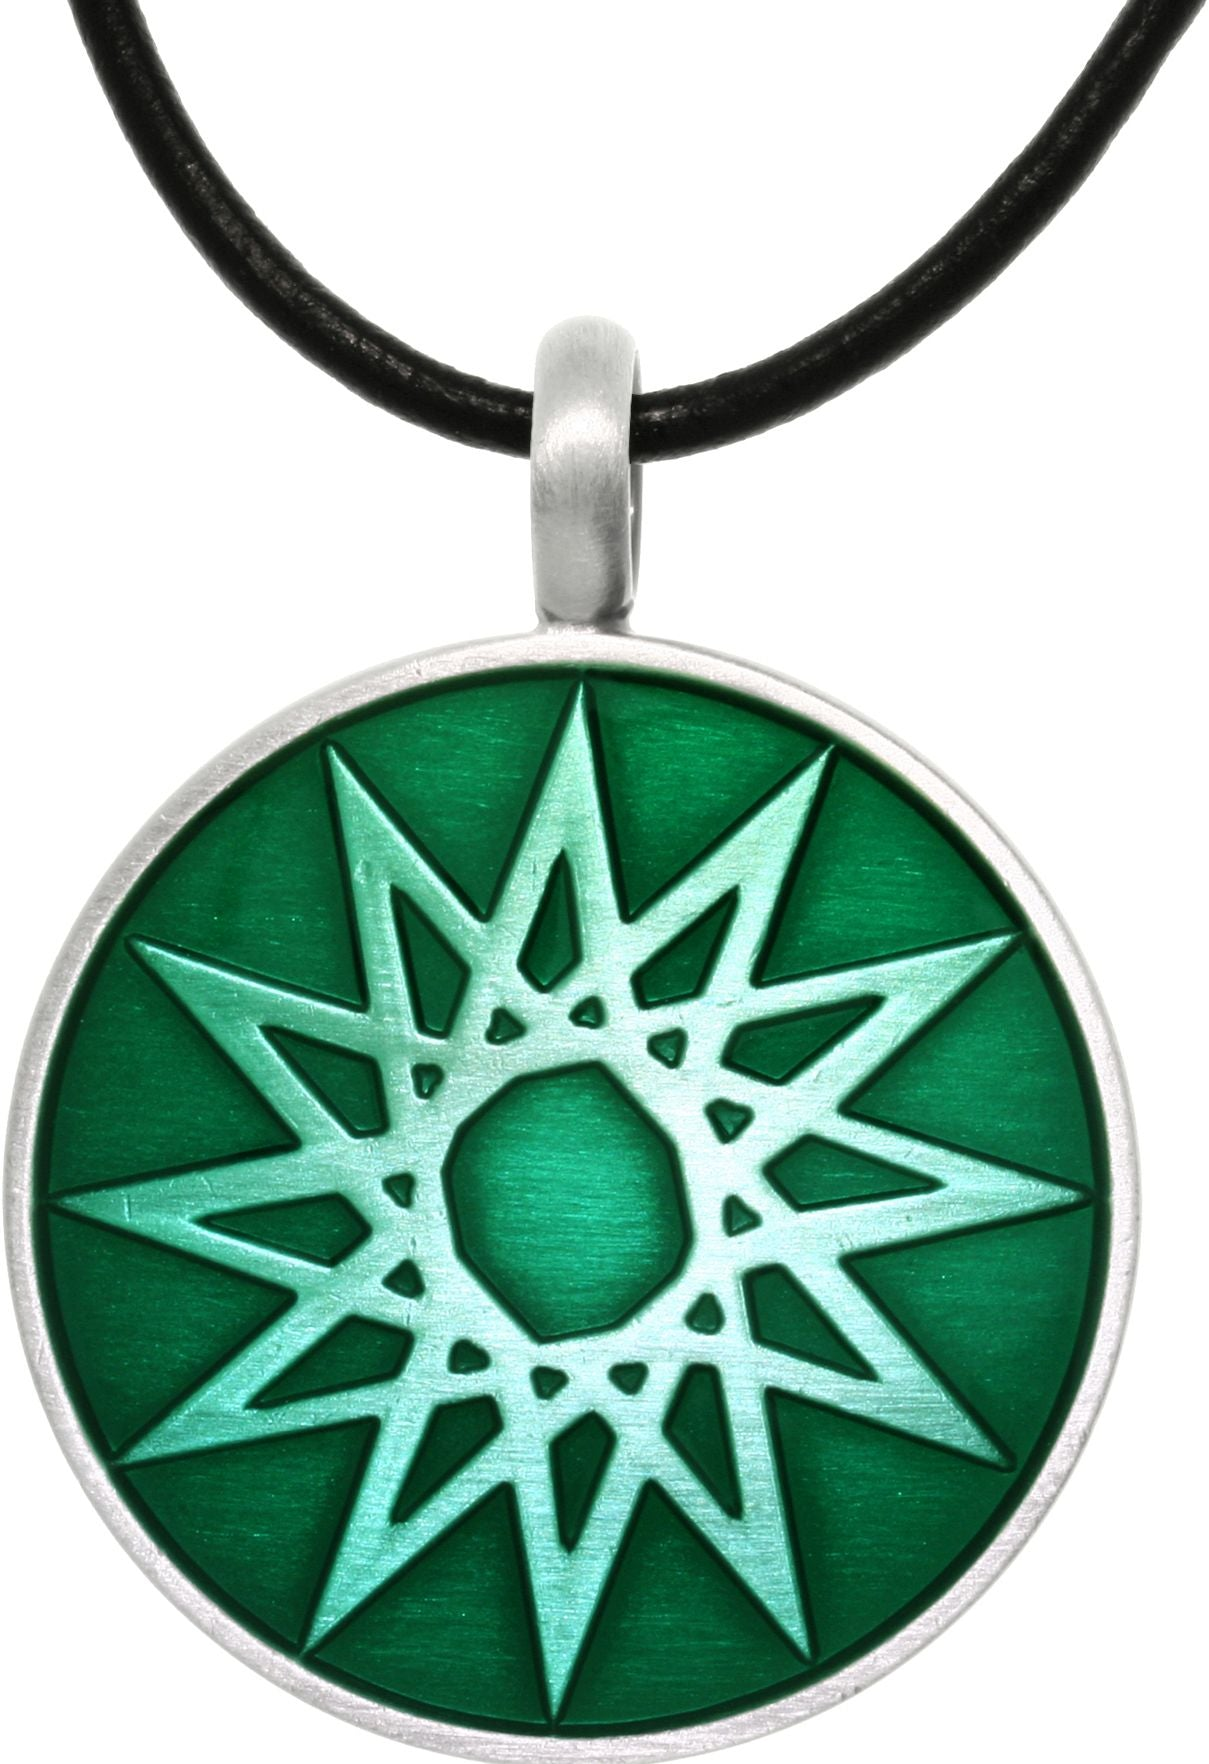 Jewelry Trends Pewter Magic Star Vibrant Green Round Celestial Success Pendant on Black Leather Cord Necklace